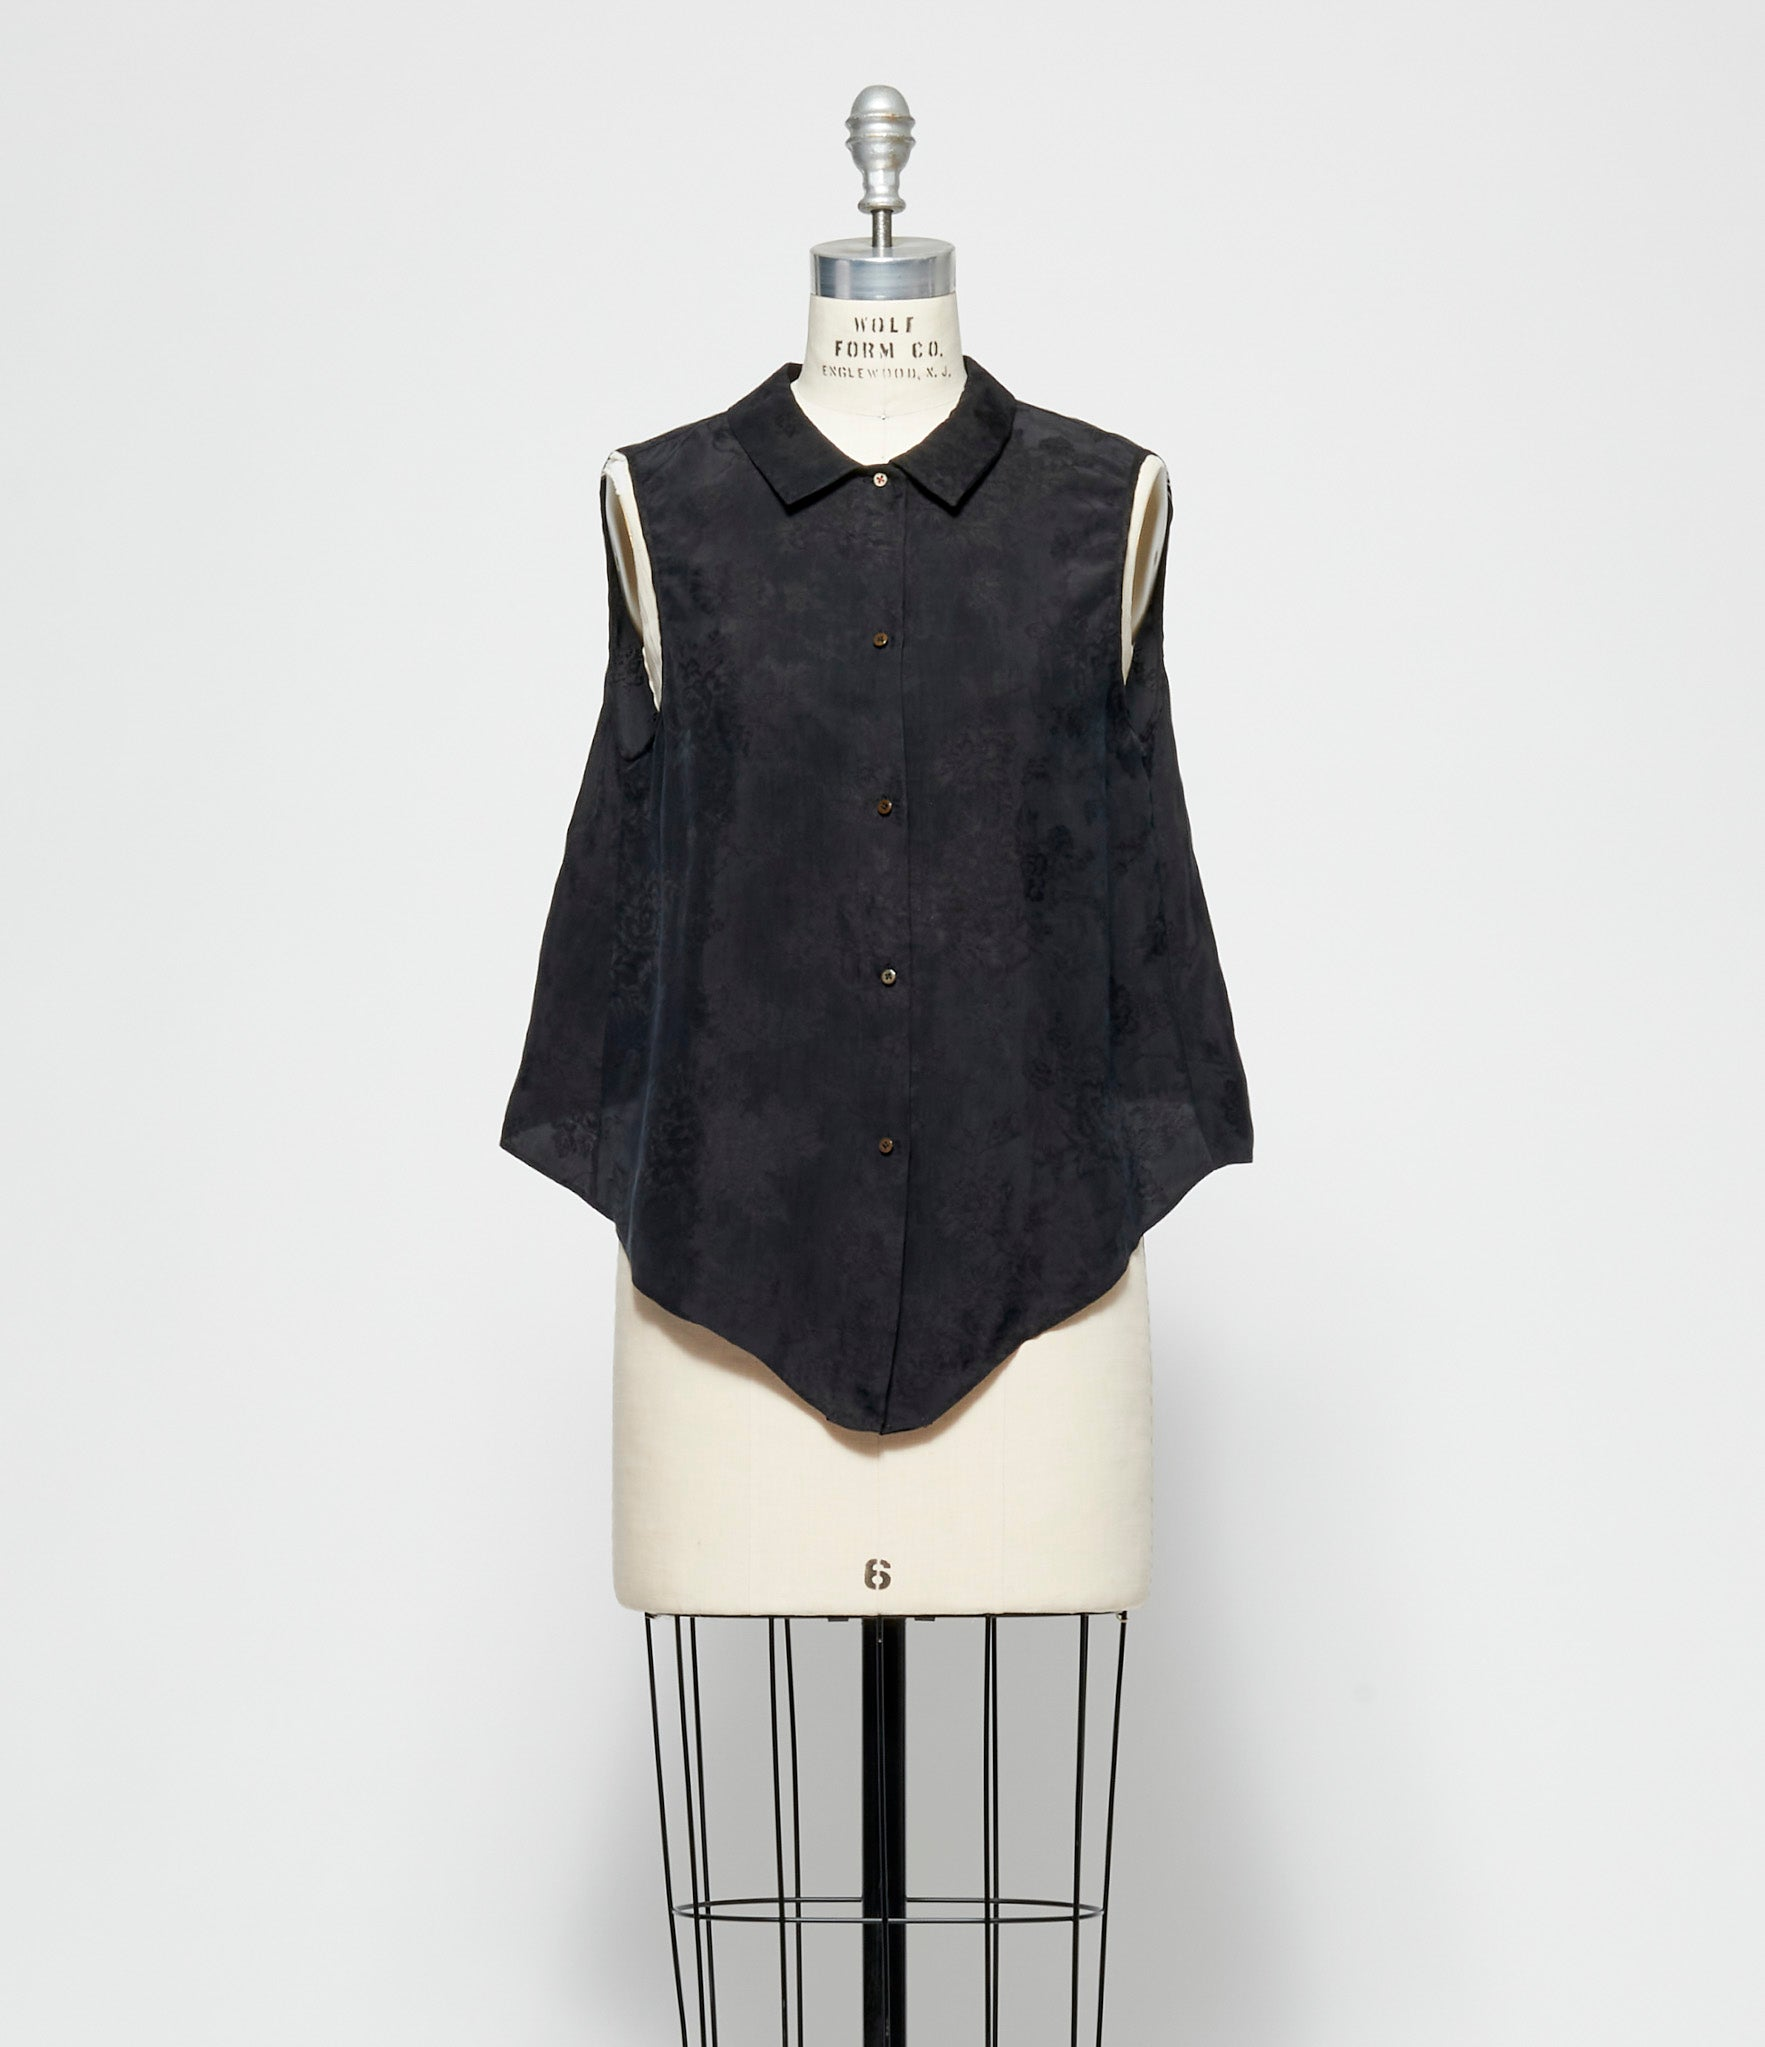 m.a+ Open Back Medium Fit Sleeveless Shirt